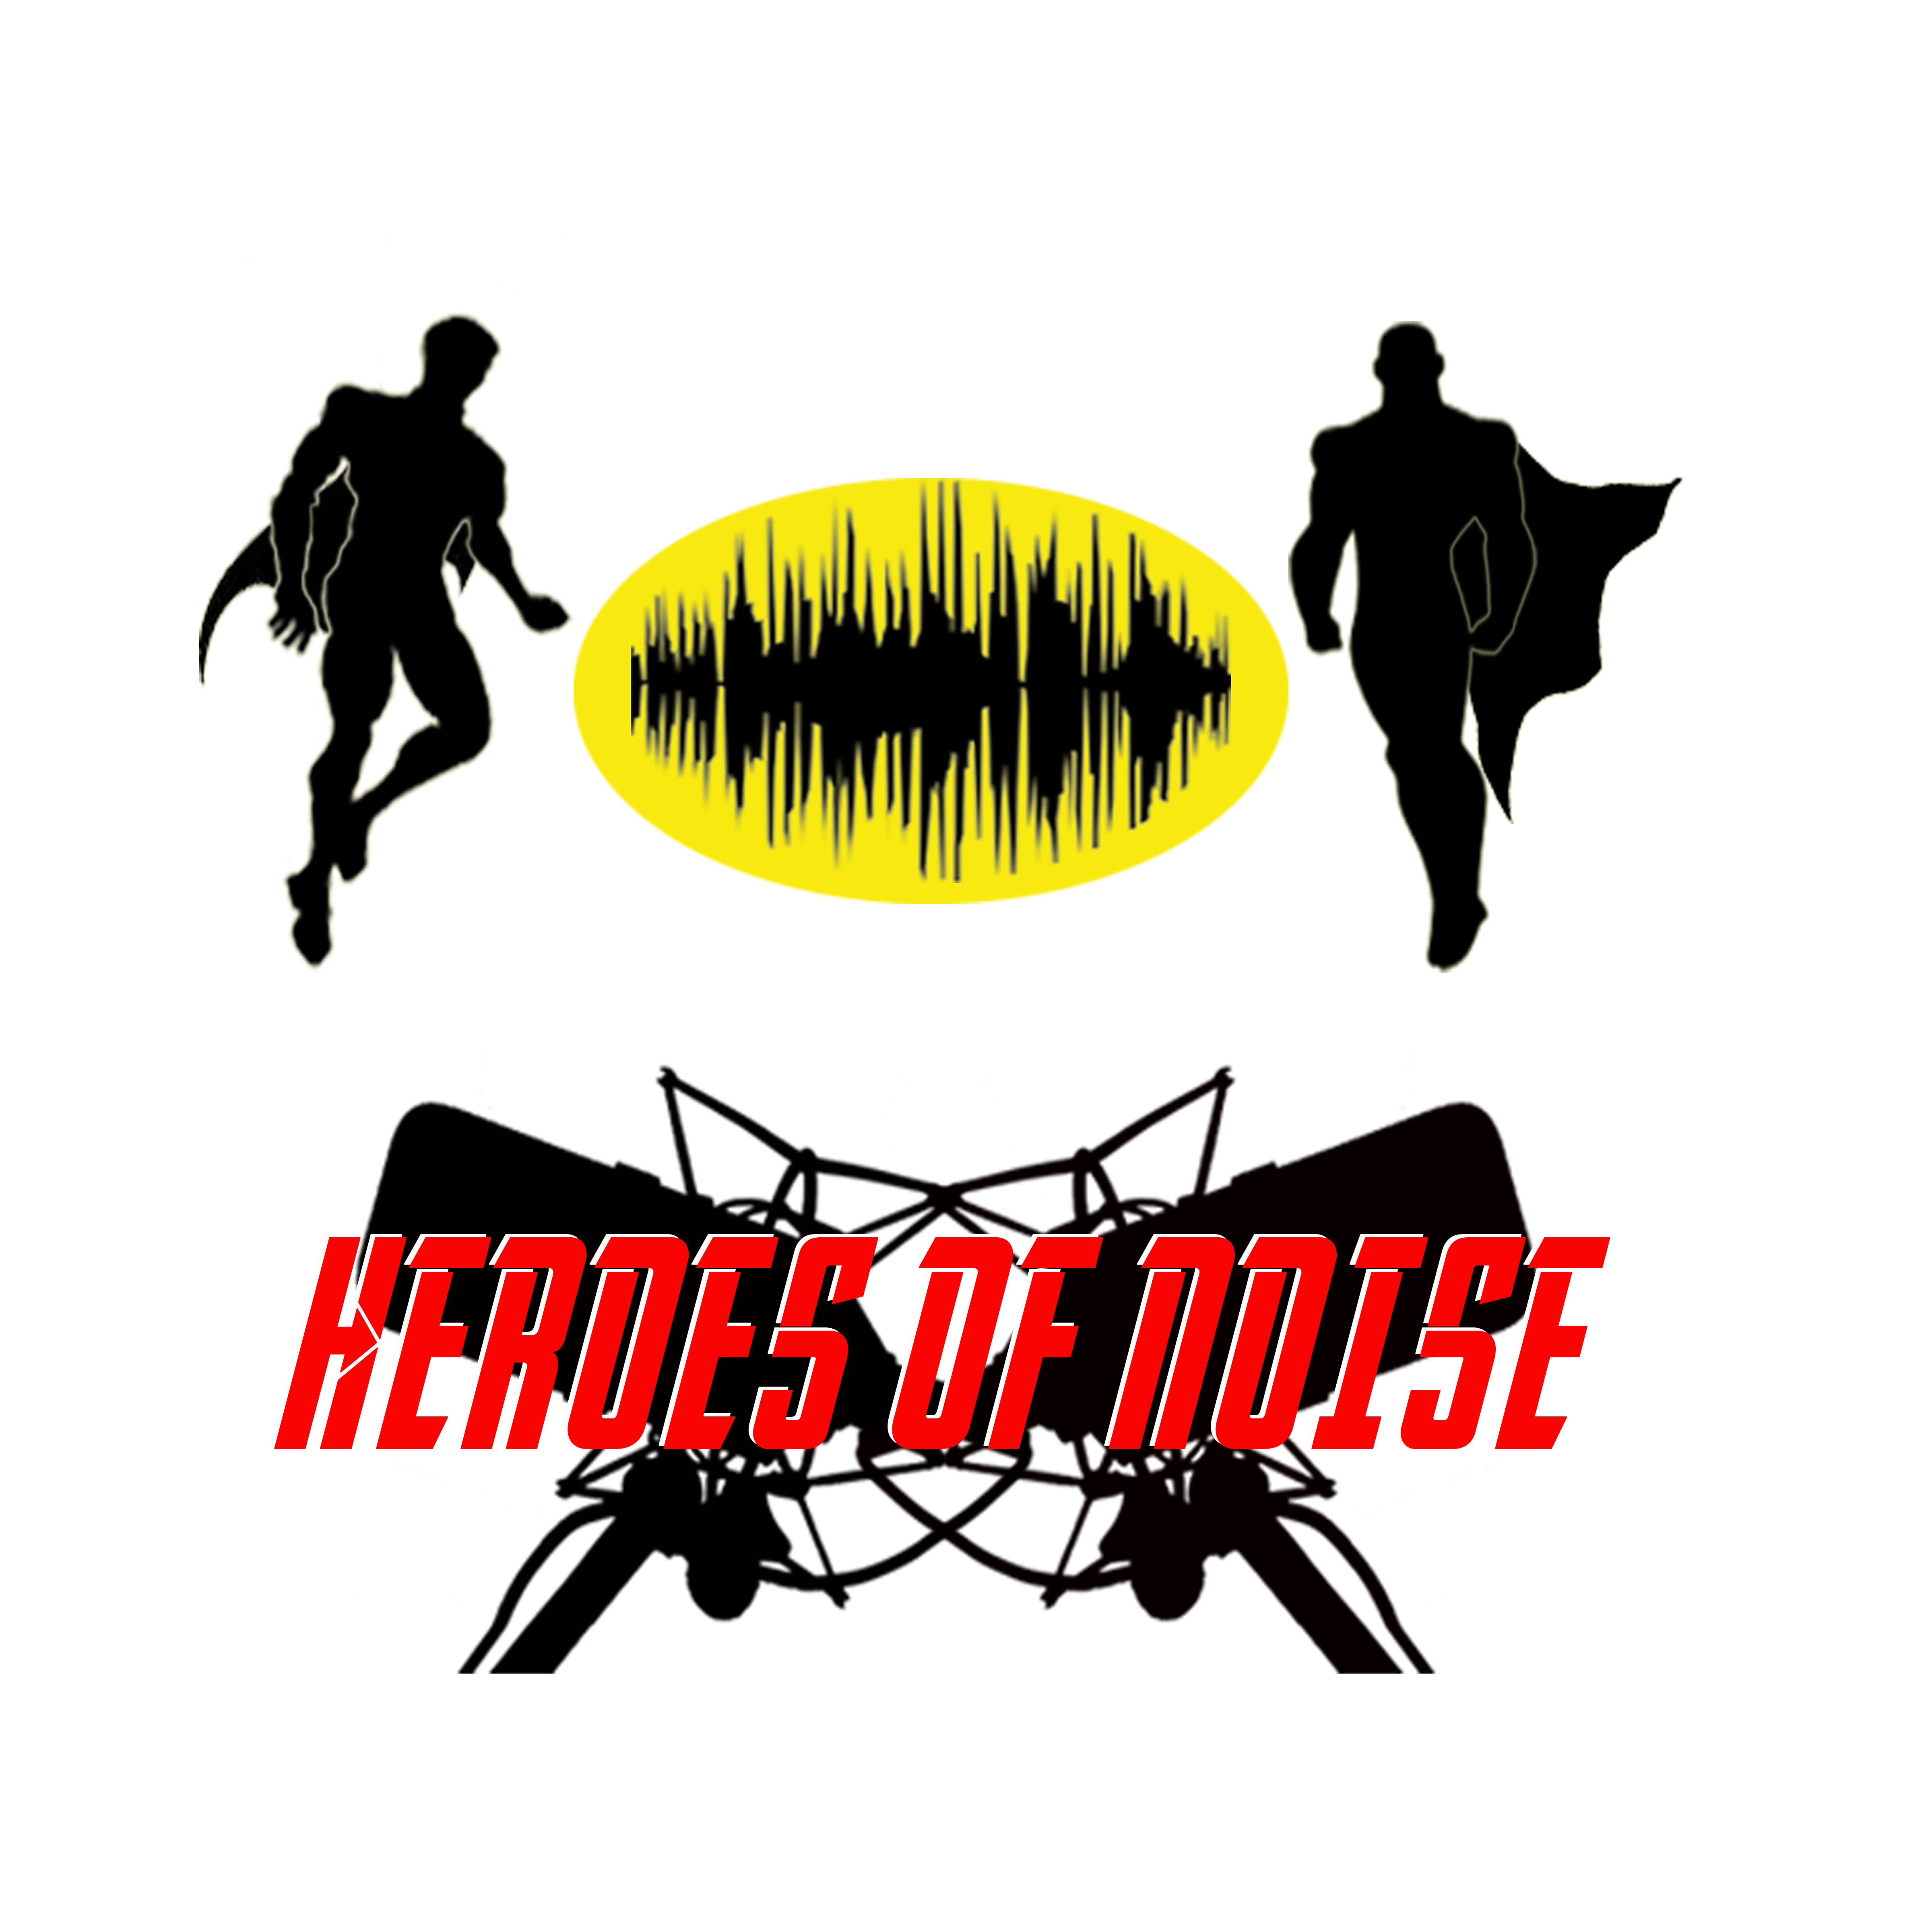 Heroes of Noise Artist Shop Logo